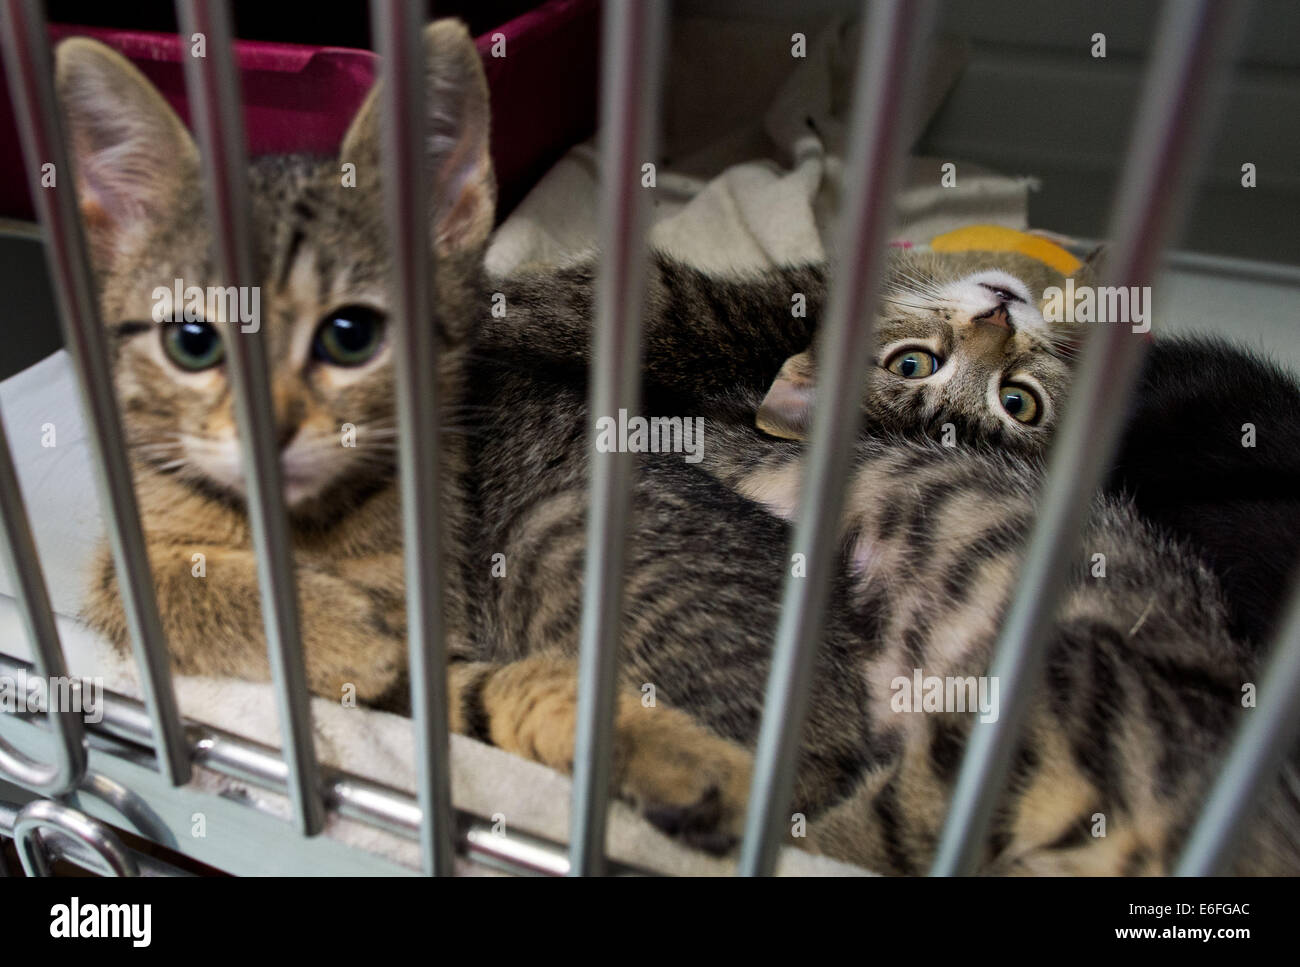 Hanover, Germany. 22nd Aug, 2014. A nine months old cat baby which was found in a cardbox in a supermarket dustbin - Stock Image